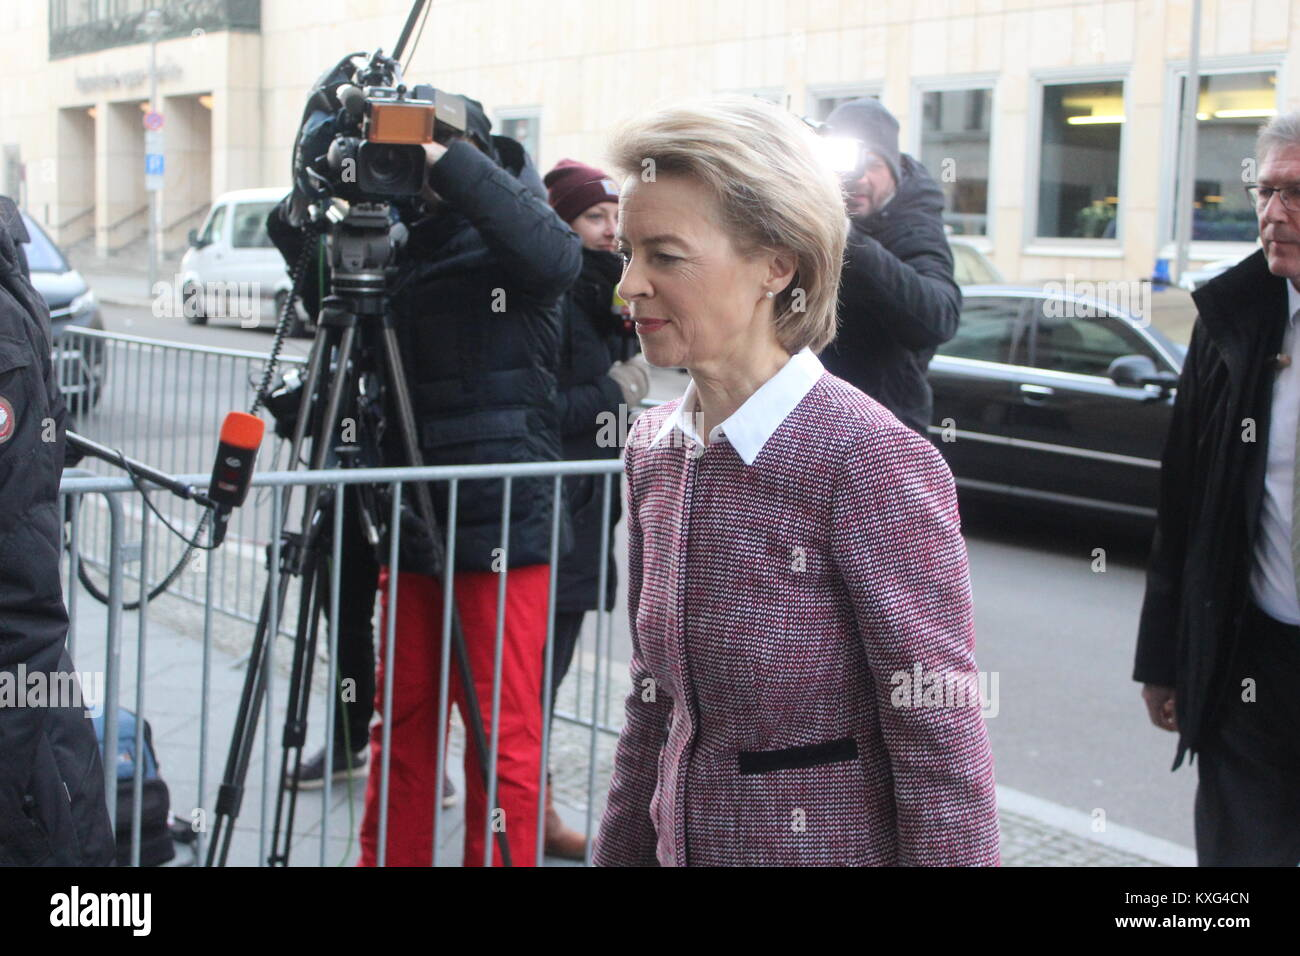 """Berlin, Germany. January 9th, 2018. Pictures of the """"Exploratory talk"""" (Sondierungsgespräch), Featuring Ursula - Stock Image"""